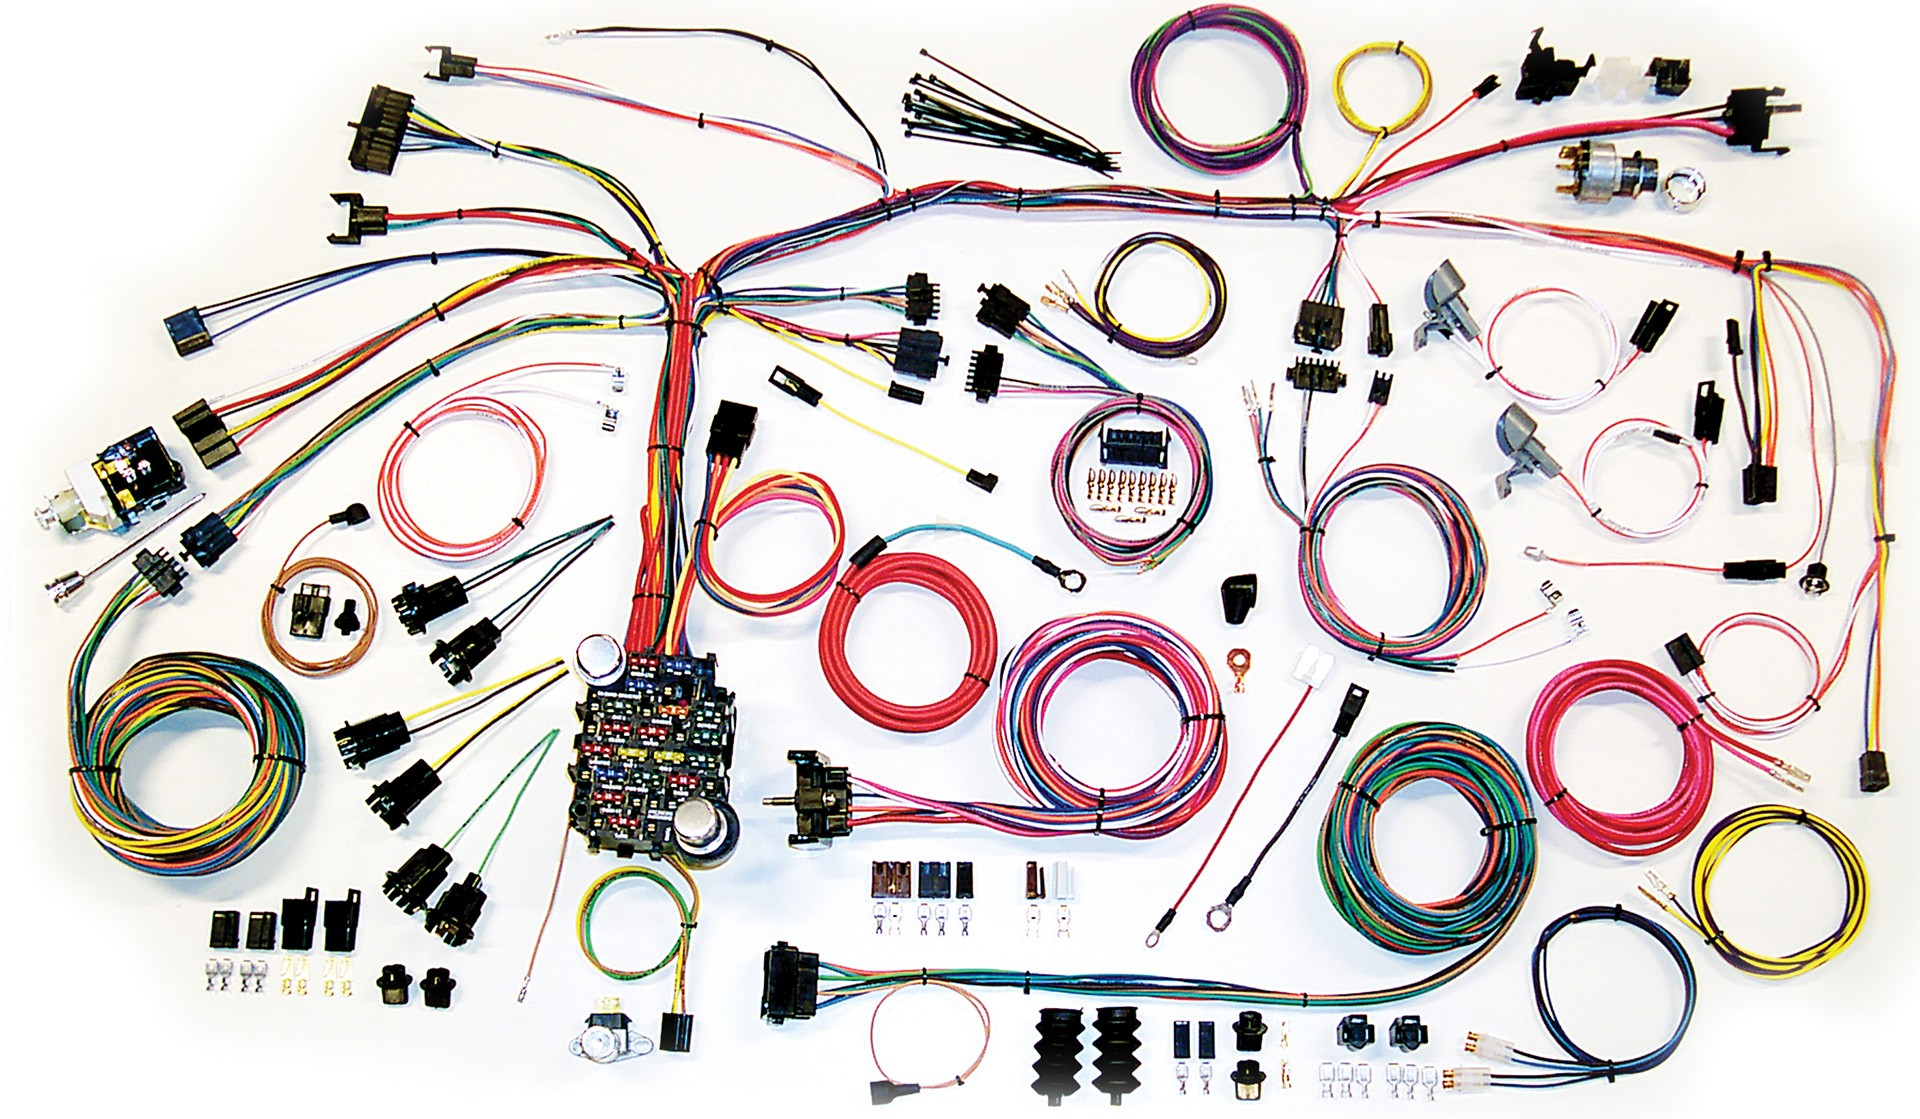 1970 Mustang Complete Wiring Harness 36 Diagram Images 1967 Camaro Fuse Box Schematic Kit 1968 Part 500661 67 68